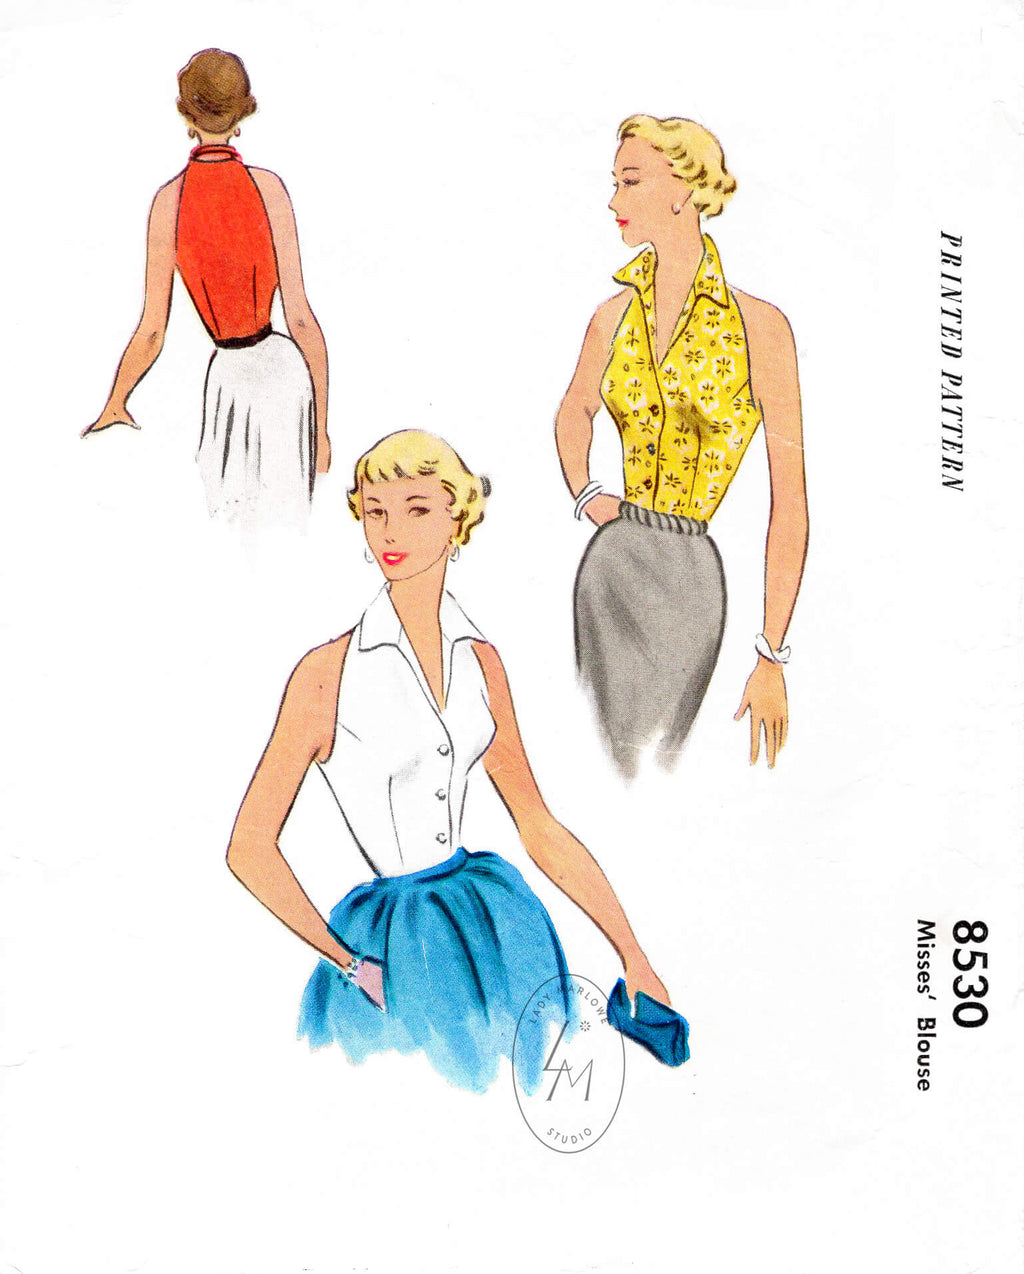 McCall's 8530 1950s 1951 halter top dart fitted with pointed collar vintage sewing pattern reproduction